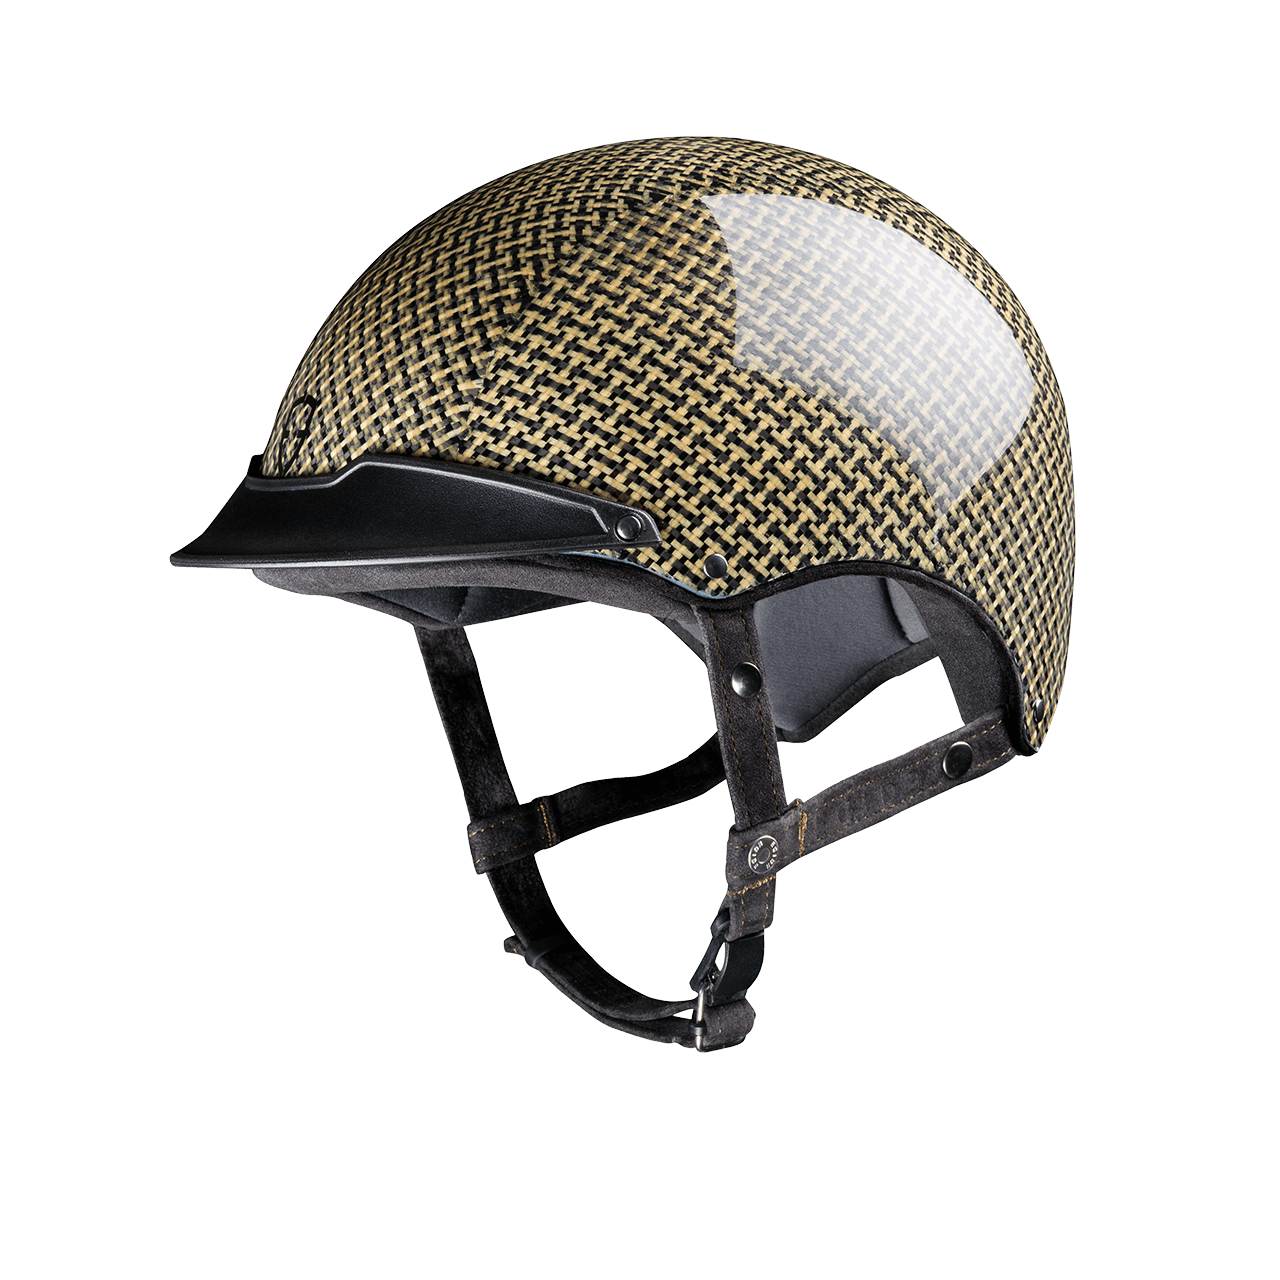 Egide Paris Apollo Helm aus Kevlar